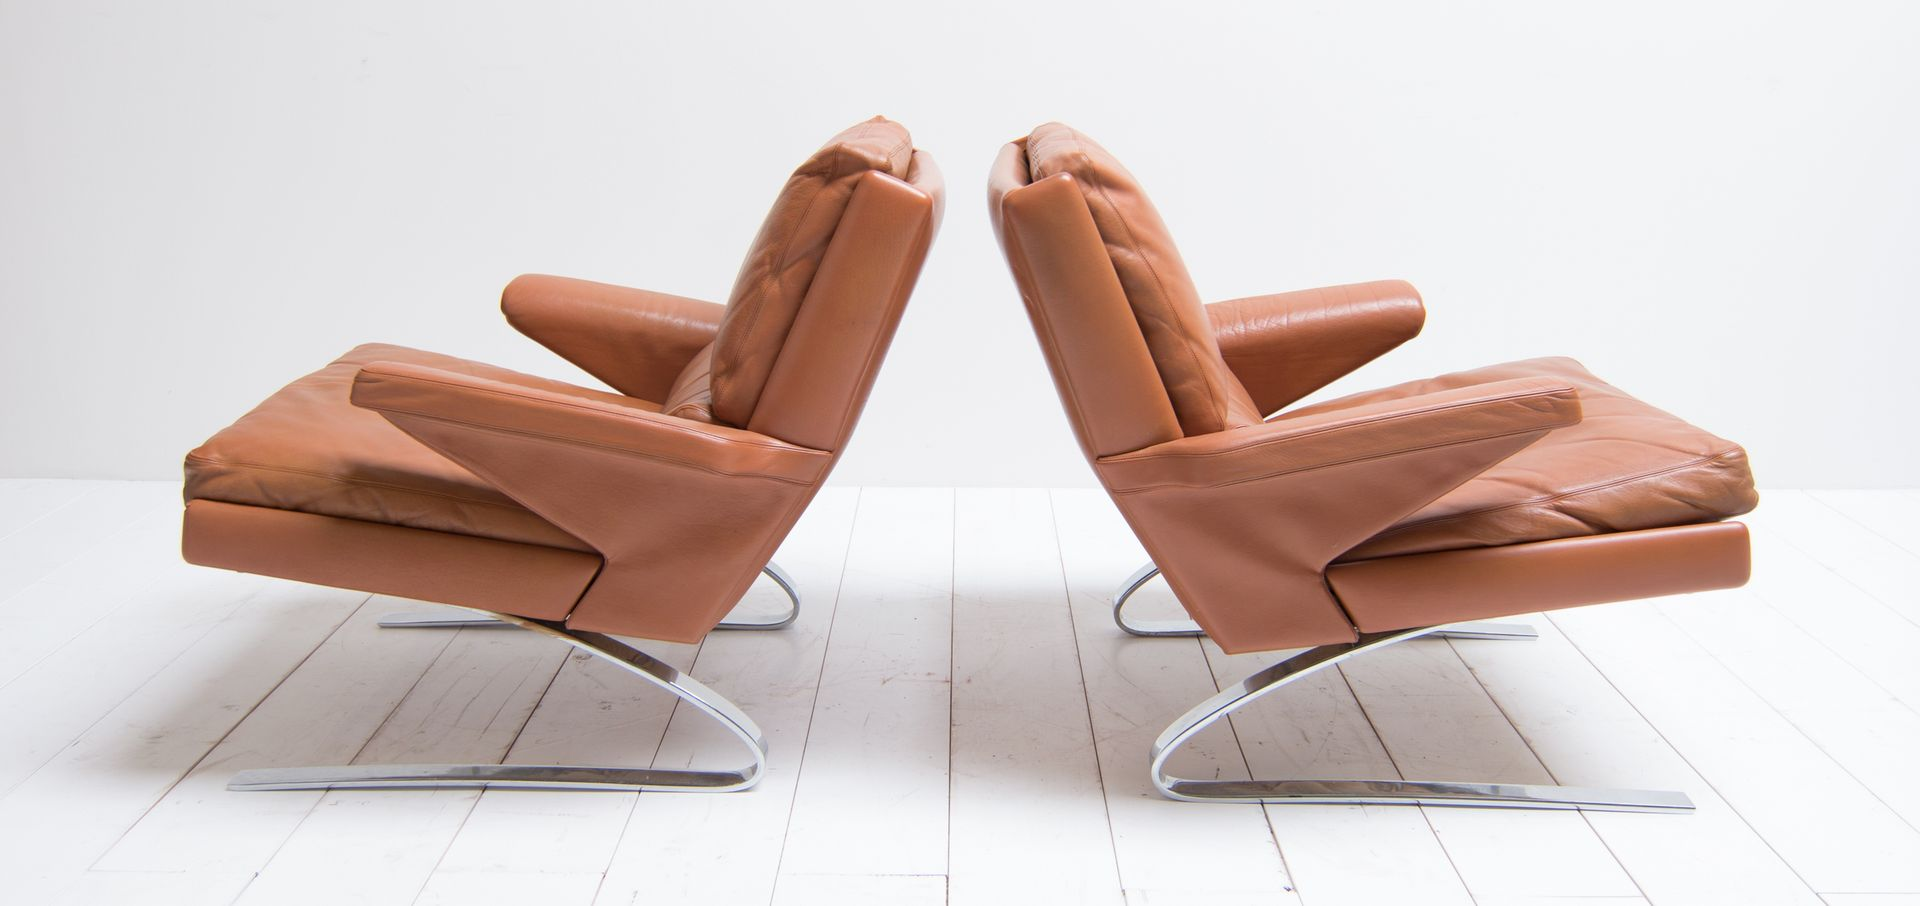 Leather Lounge Chairs By Reinhold Adolf U0026 Hans Jürgen Schröpfer For Cor,  1960s, Set Of 2